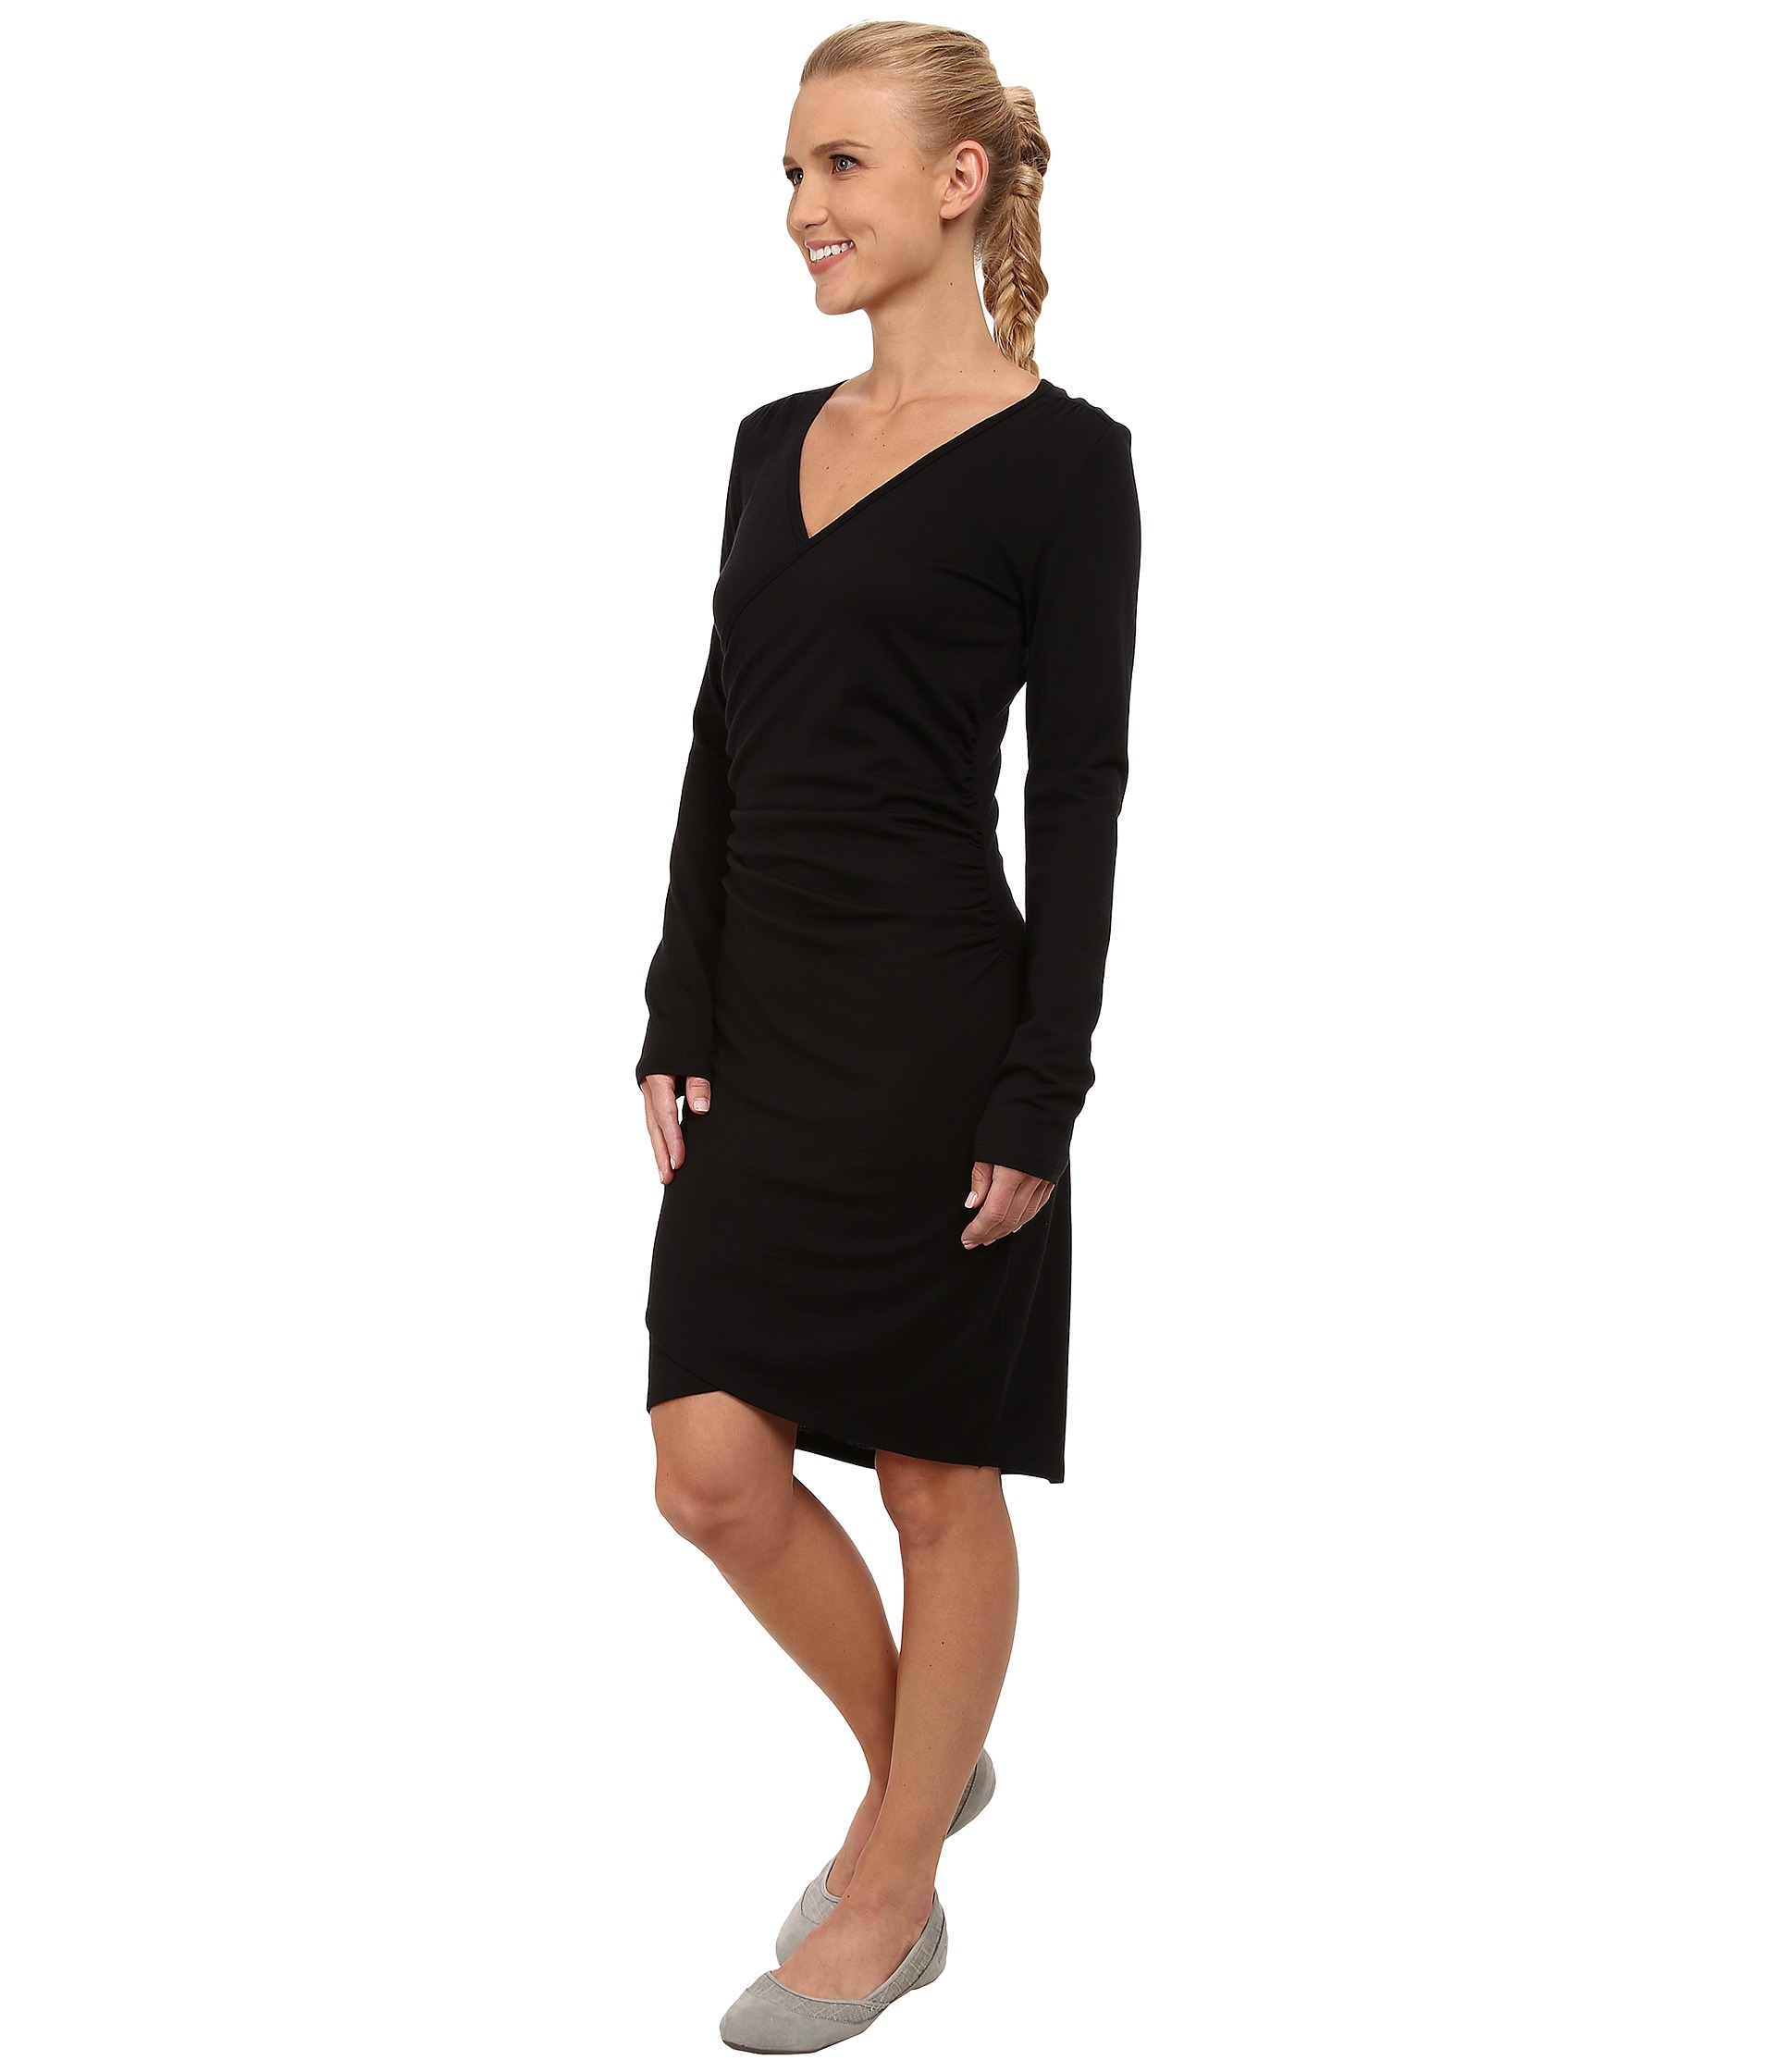 Icebreaker roma dress long sleeve